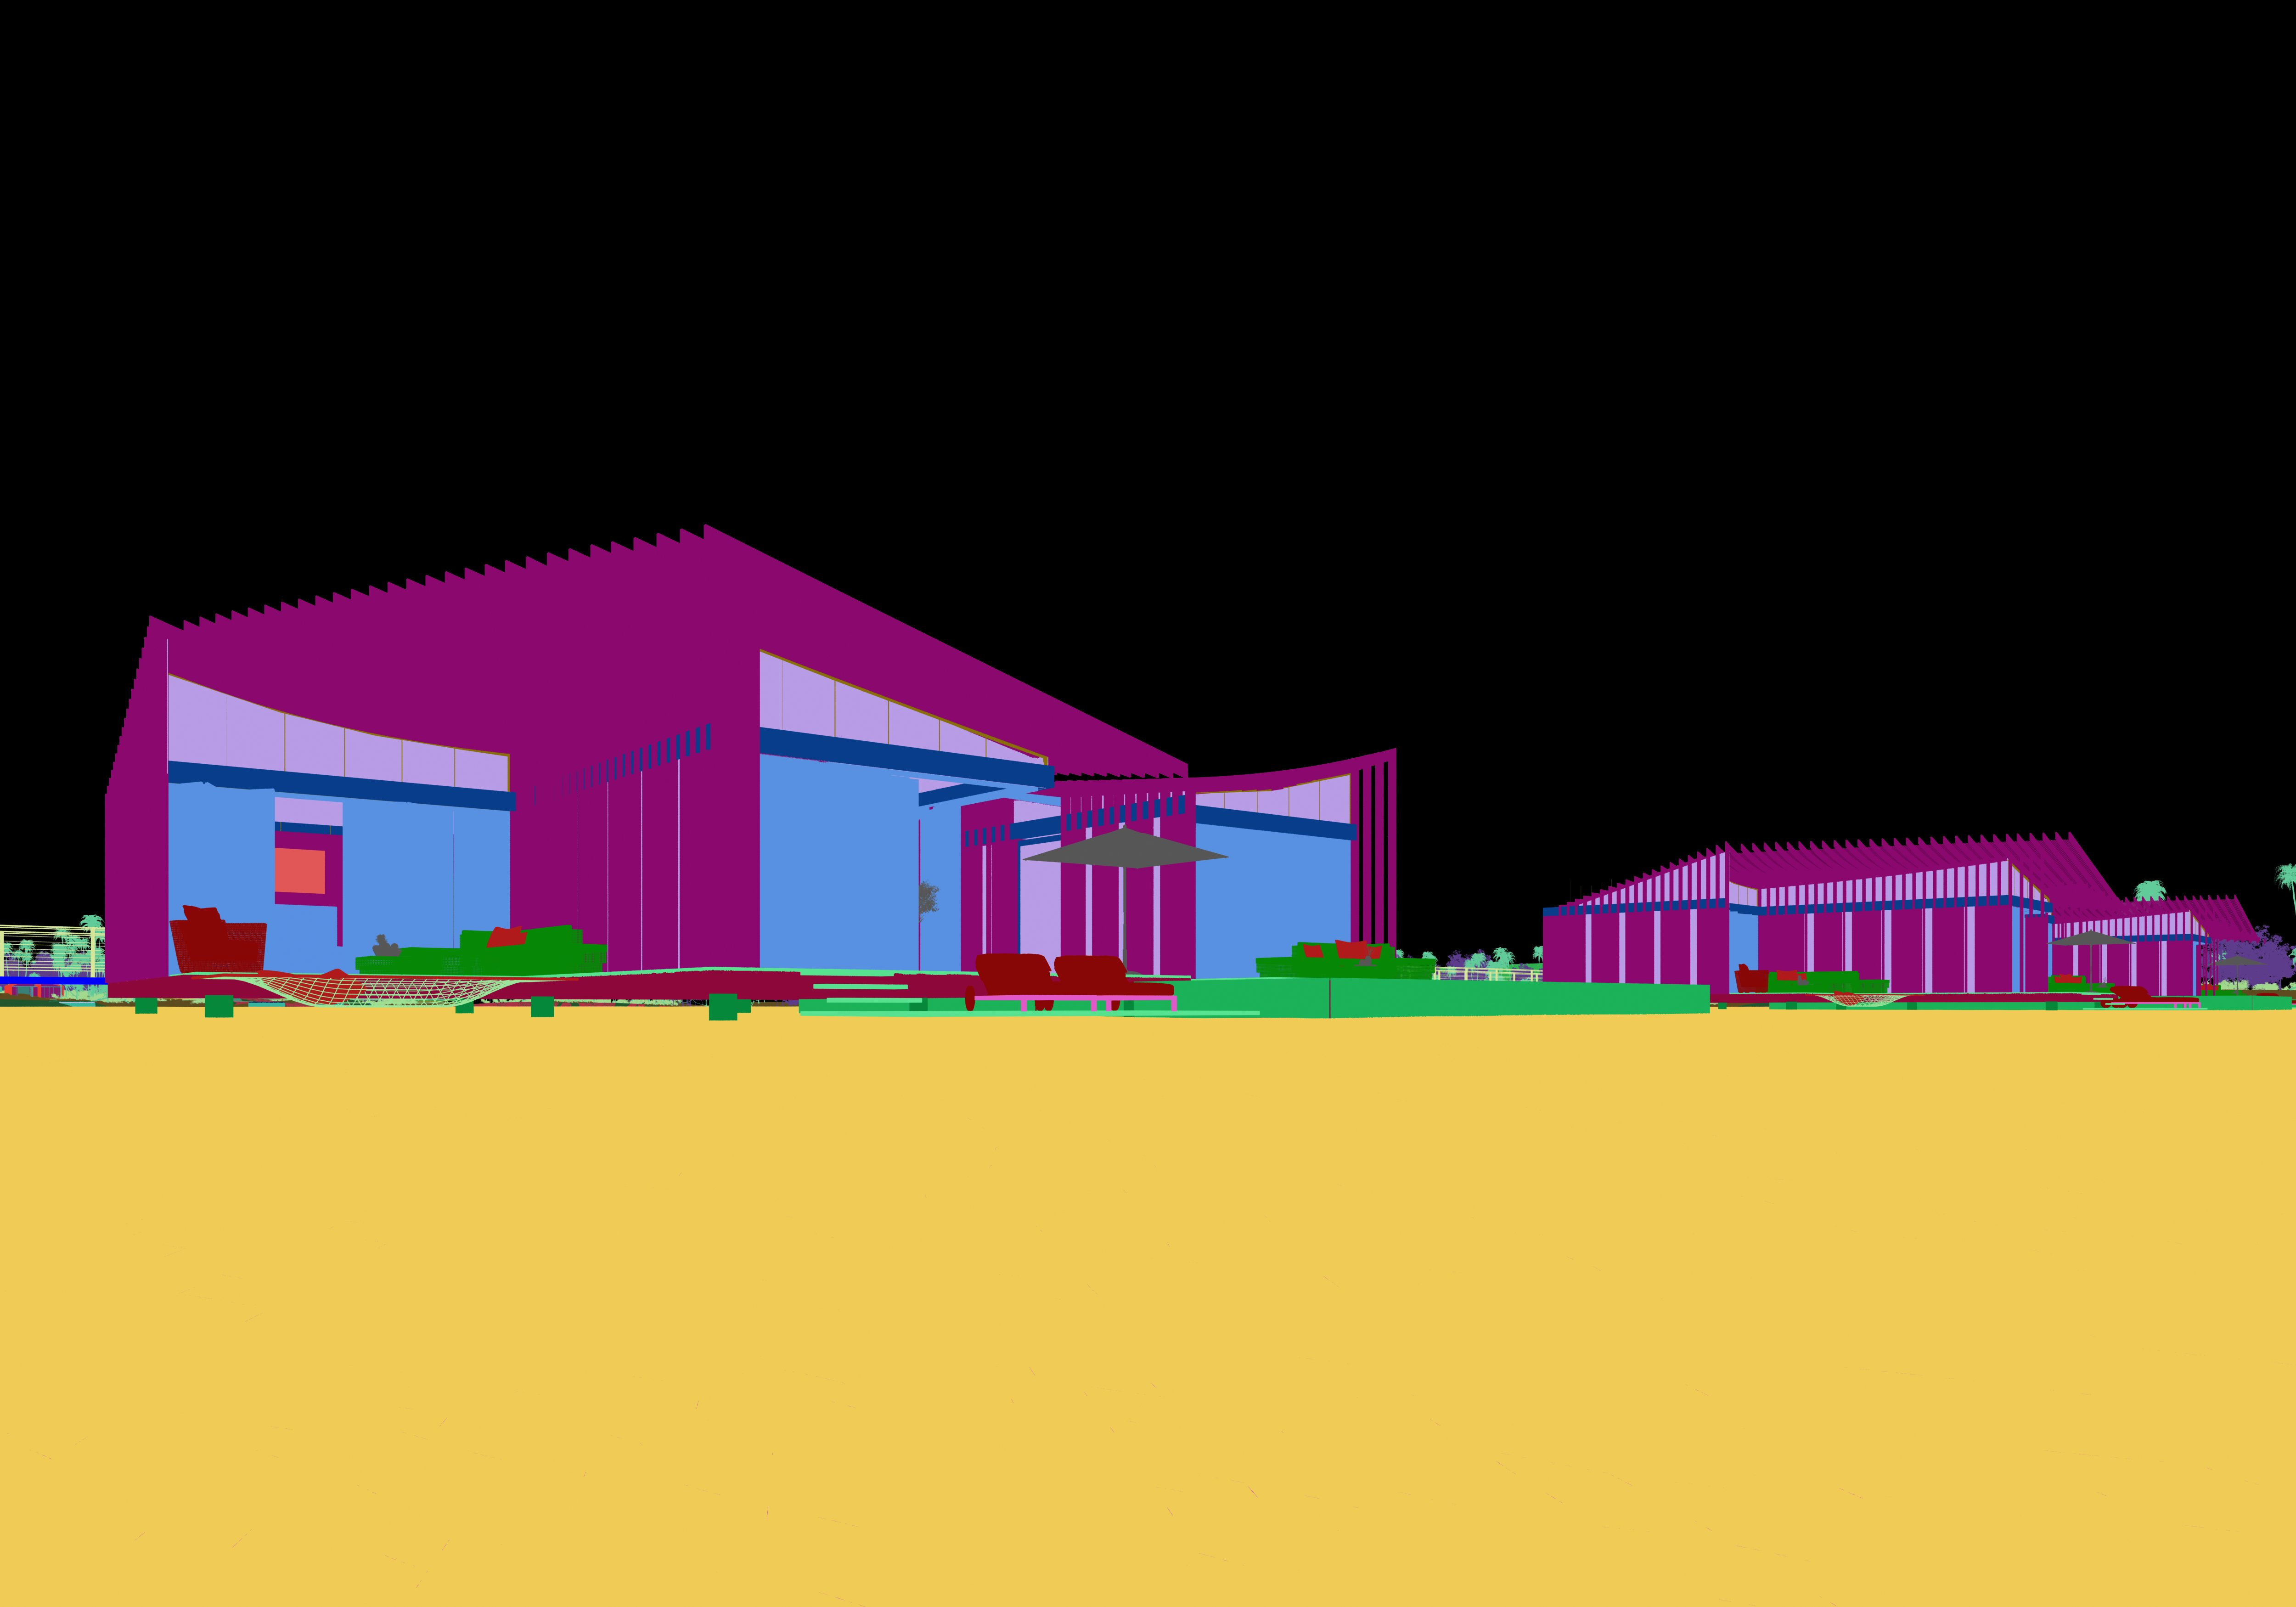 17_white.VRayWireColor_950.jpg